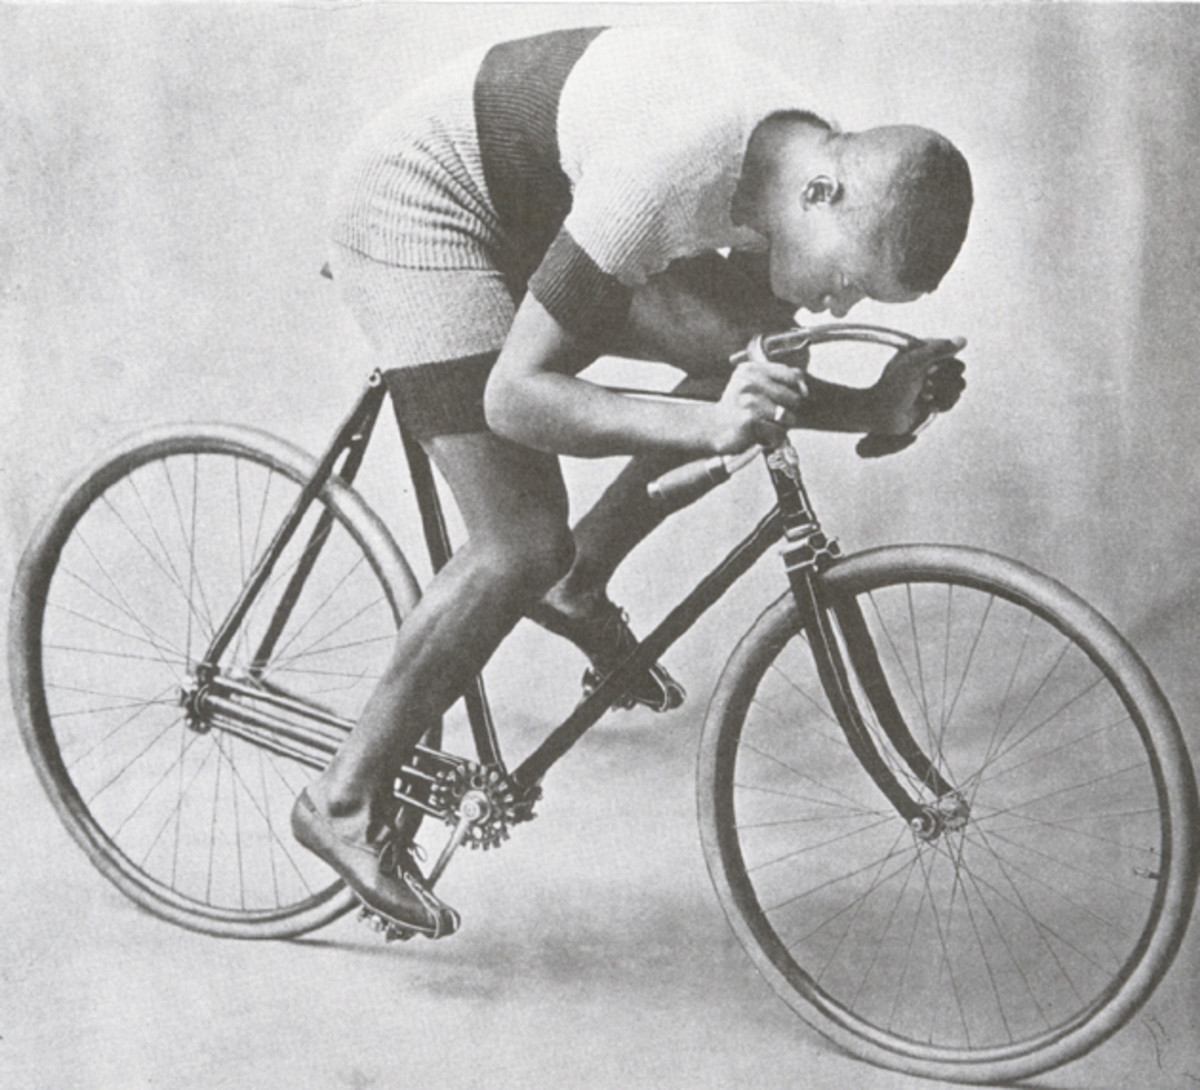 Taylor on the chainless bicycle on which he won the world championship and broke world records in 1899. Uncredited photo, Taylor scrapbook.